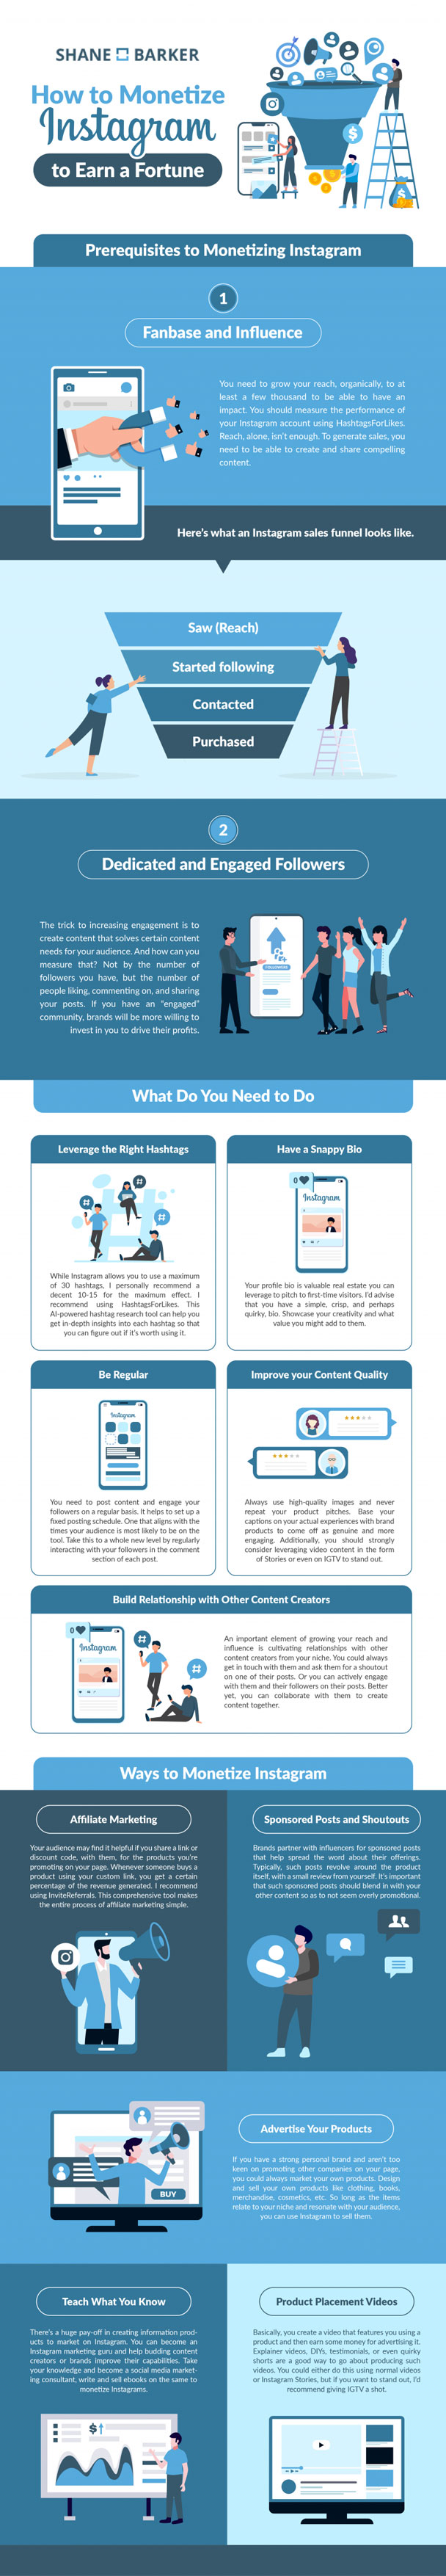 Social Media Tips: How to Monetize Your Instagram Account and Earn Money [Infographic]